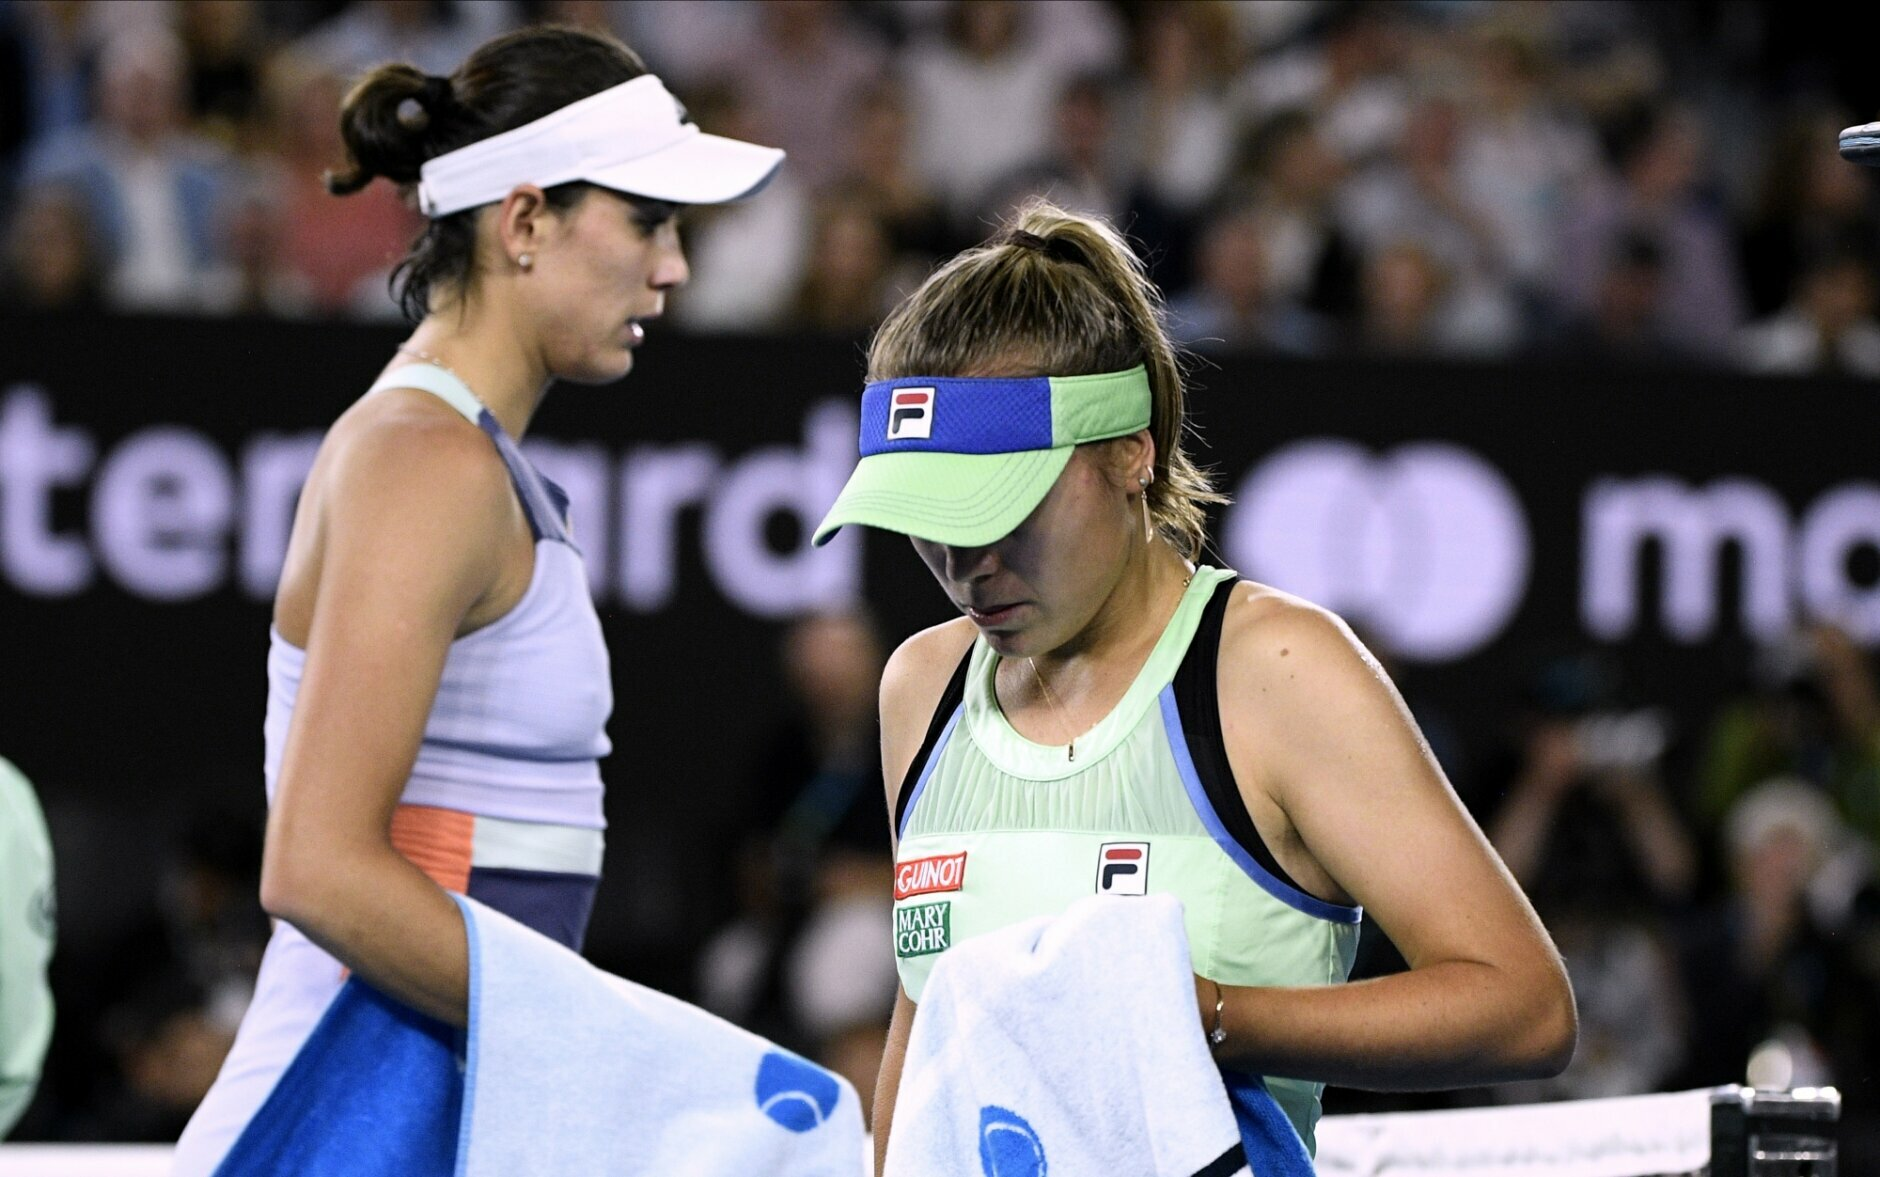 Kenin Of Us Tops Muguruza At Australian Open For 1st Major Wtop